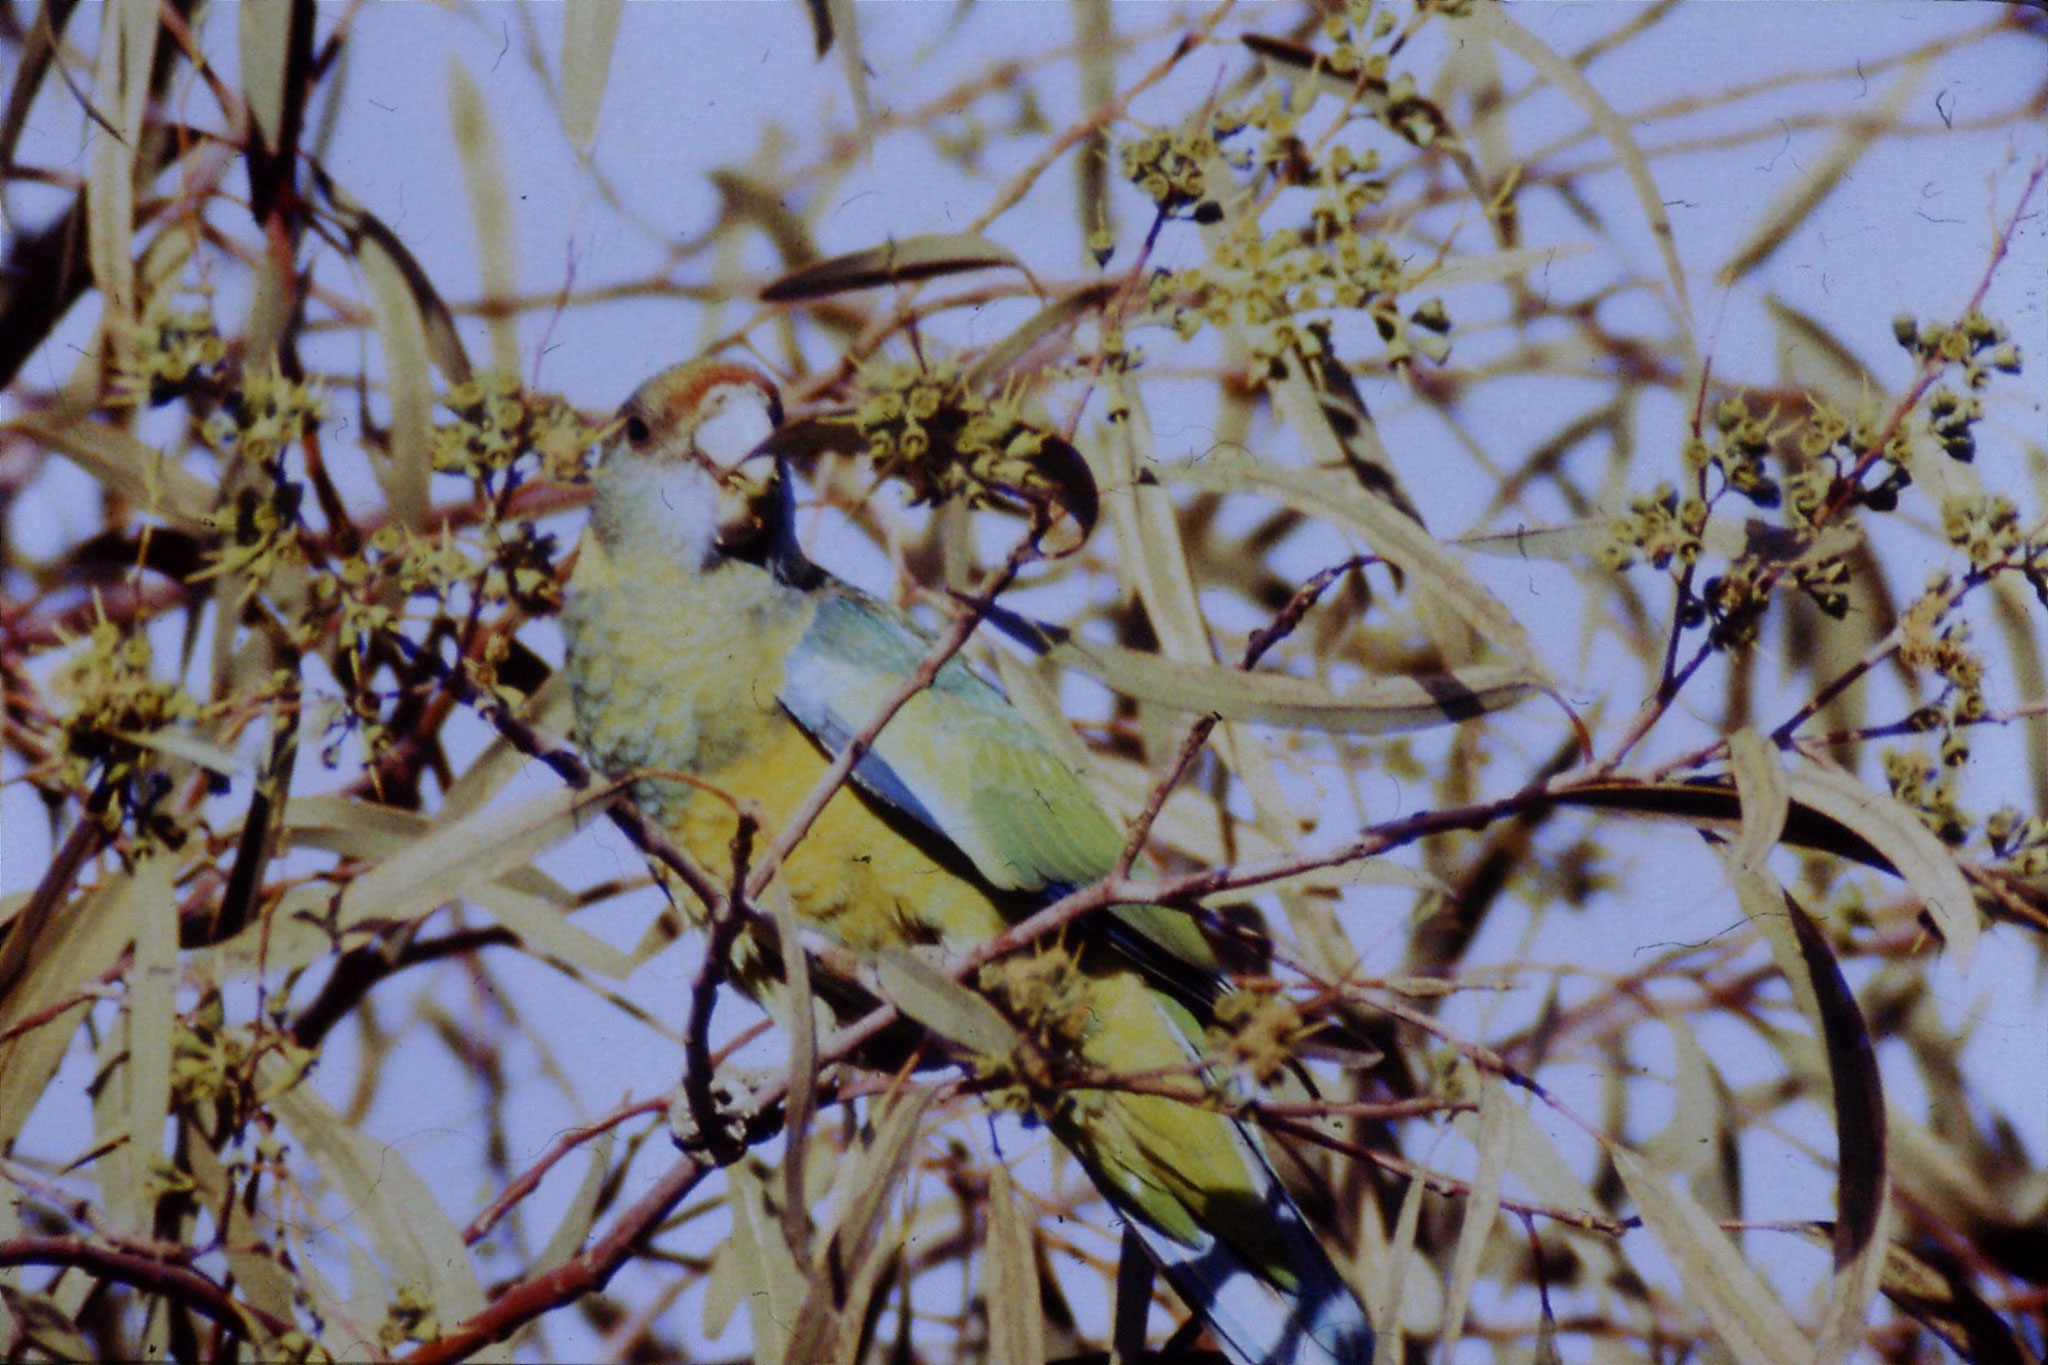 6/11/1990: 28: Flinders Ranges National Park, Port Lincoln ringnecked parrot